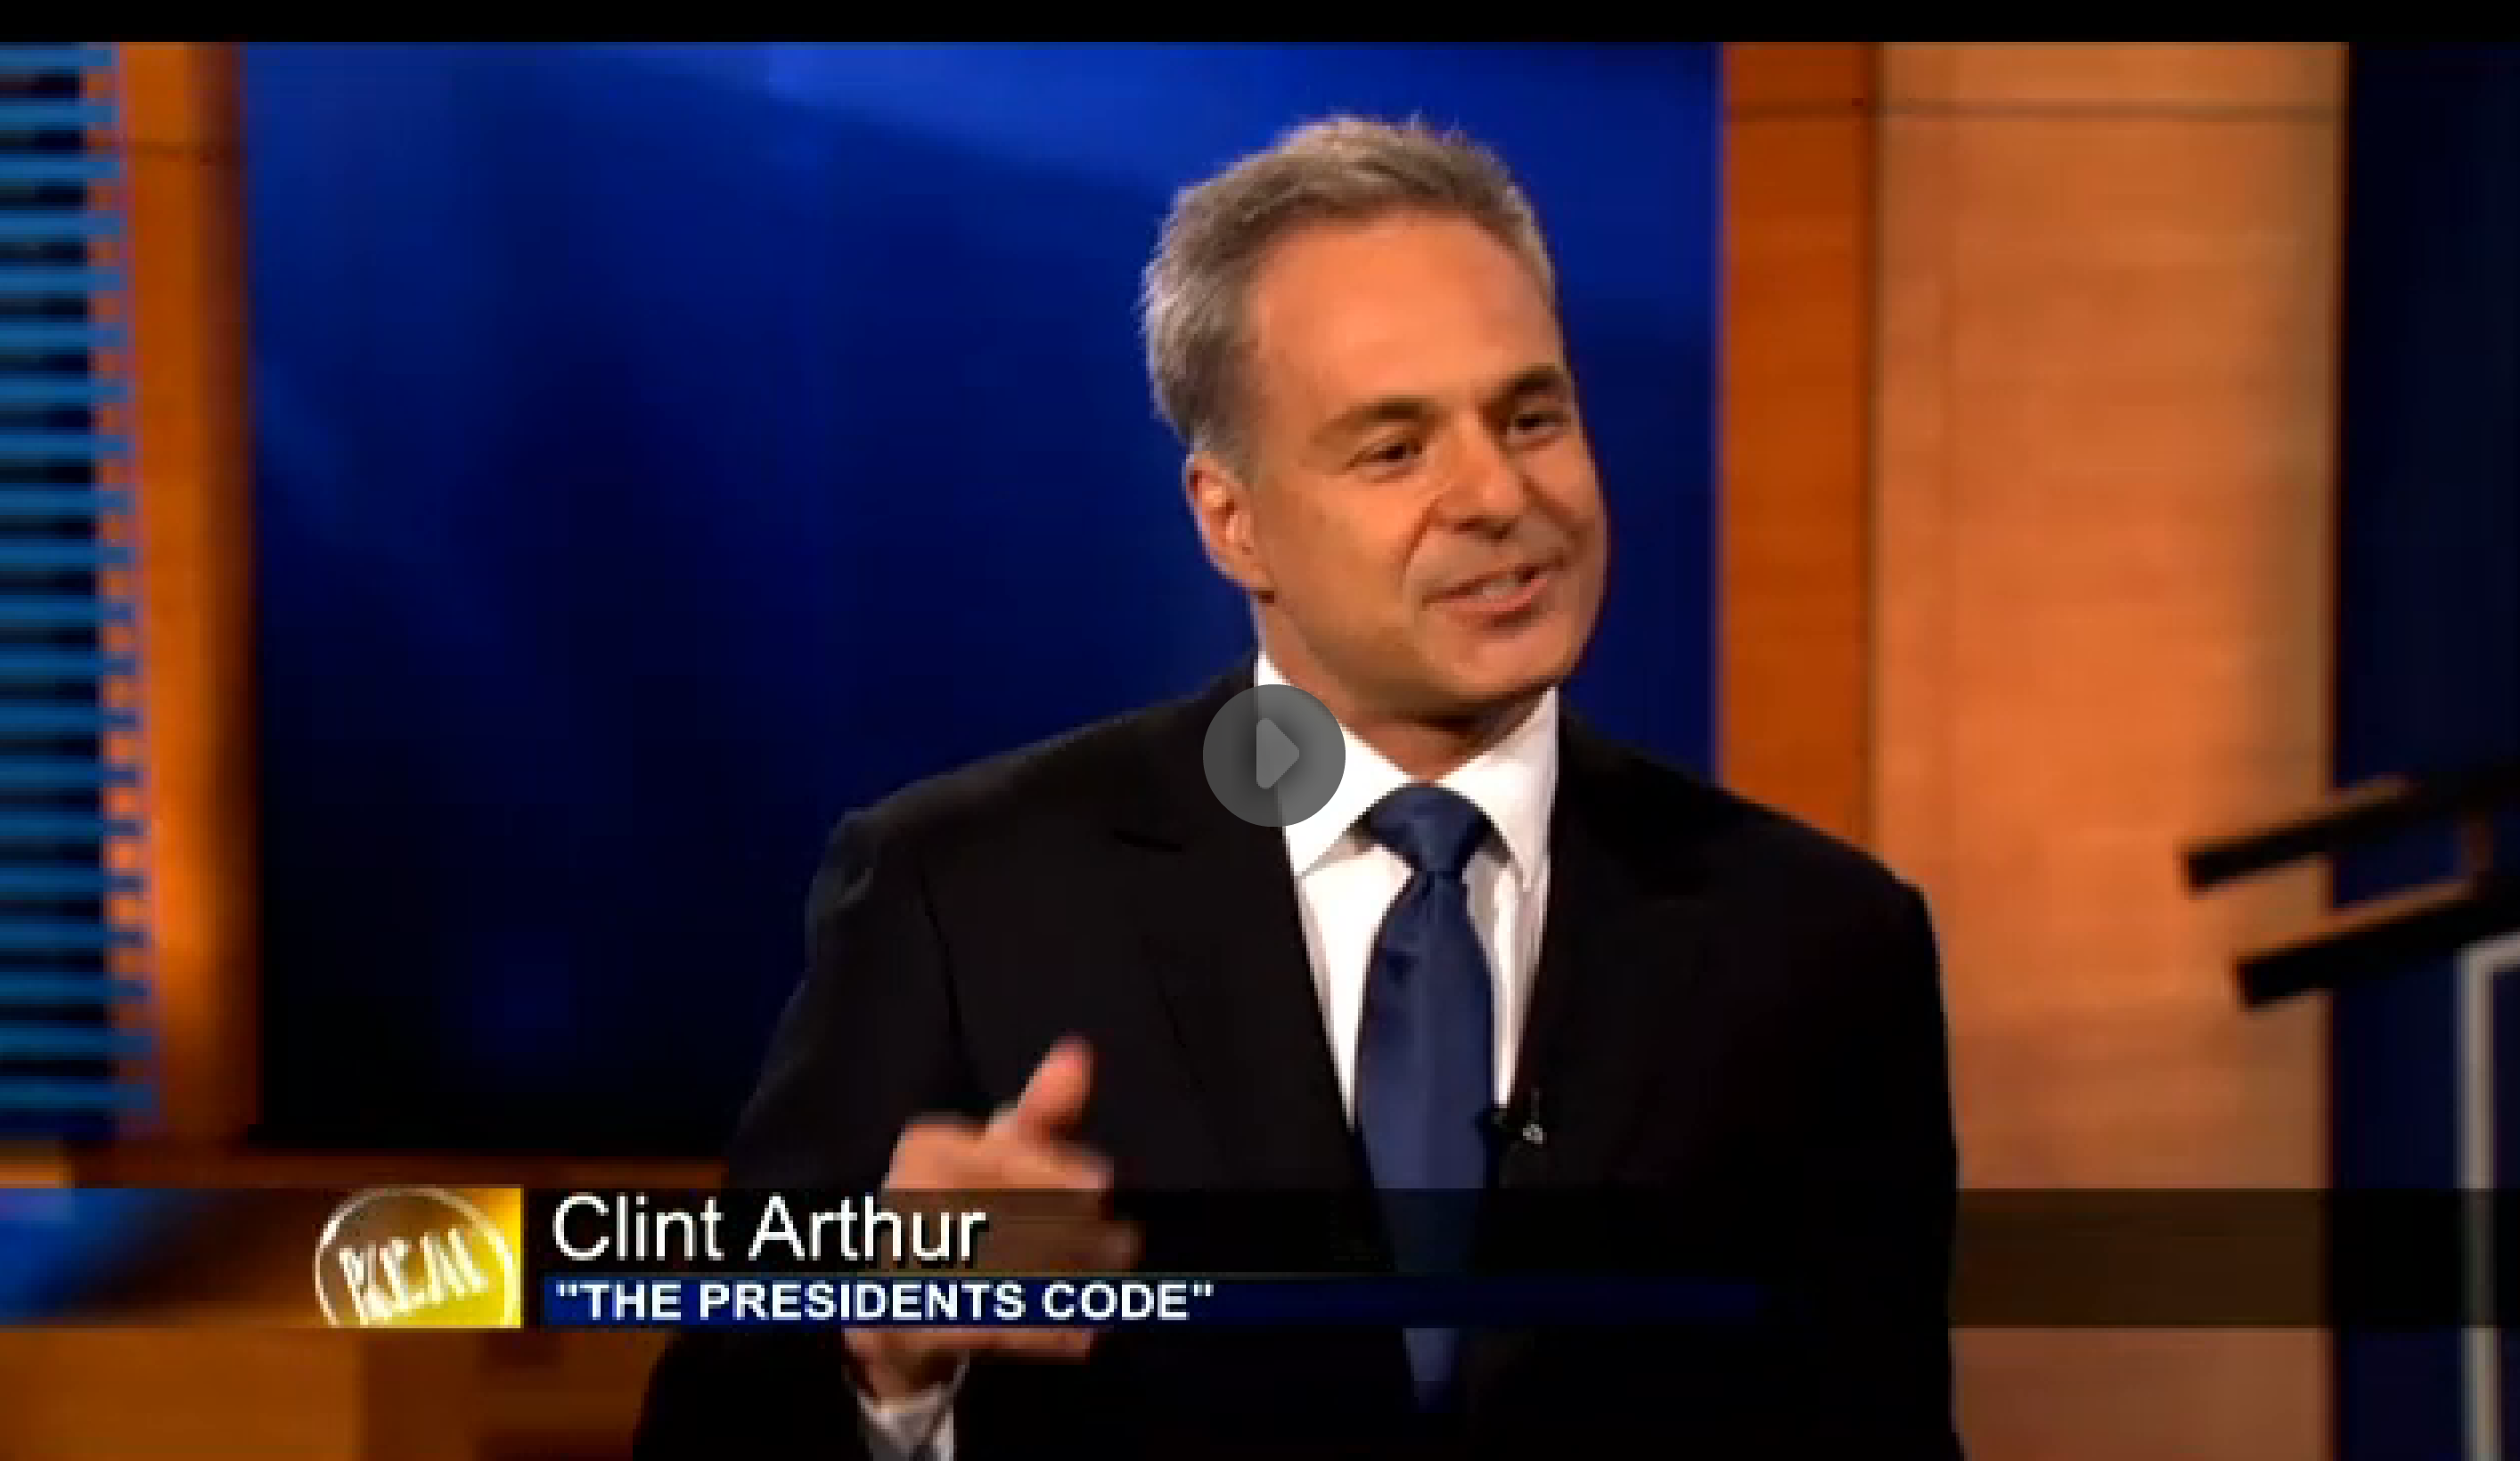 Clint Arthur on KCAL Los Angeles